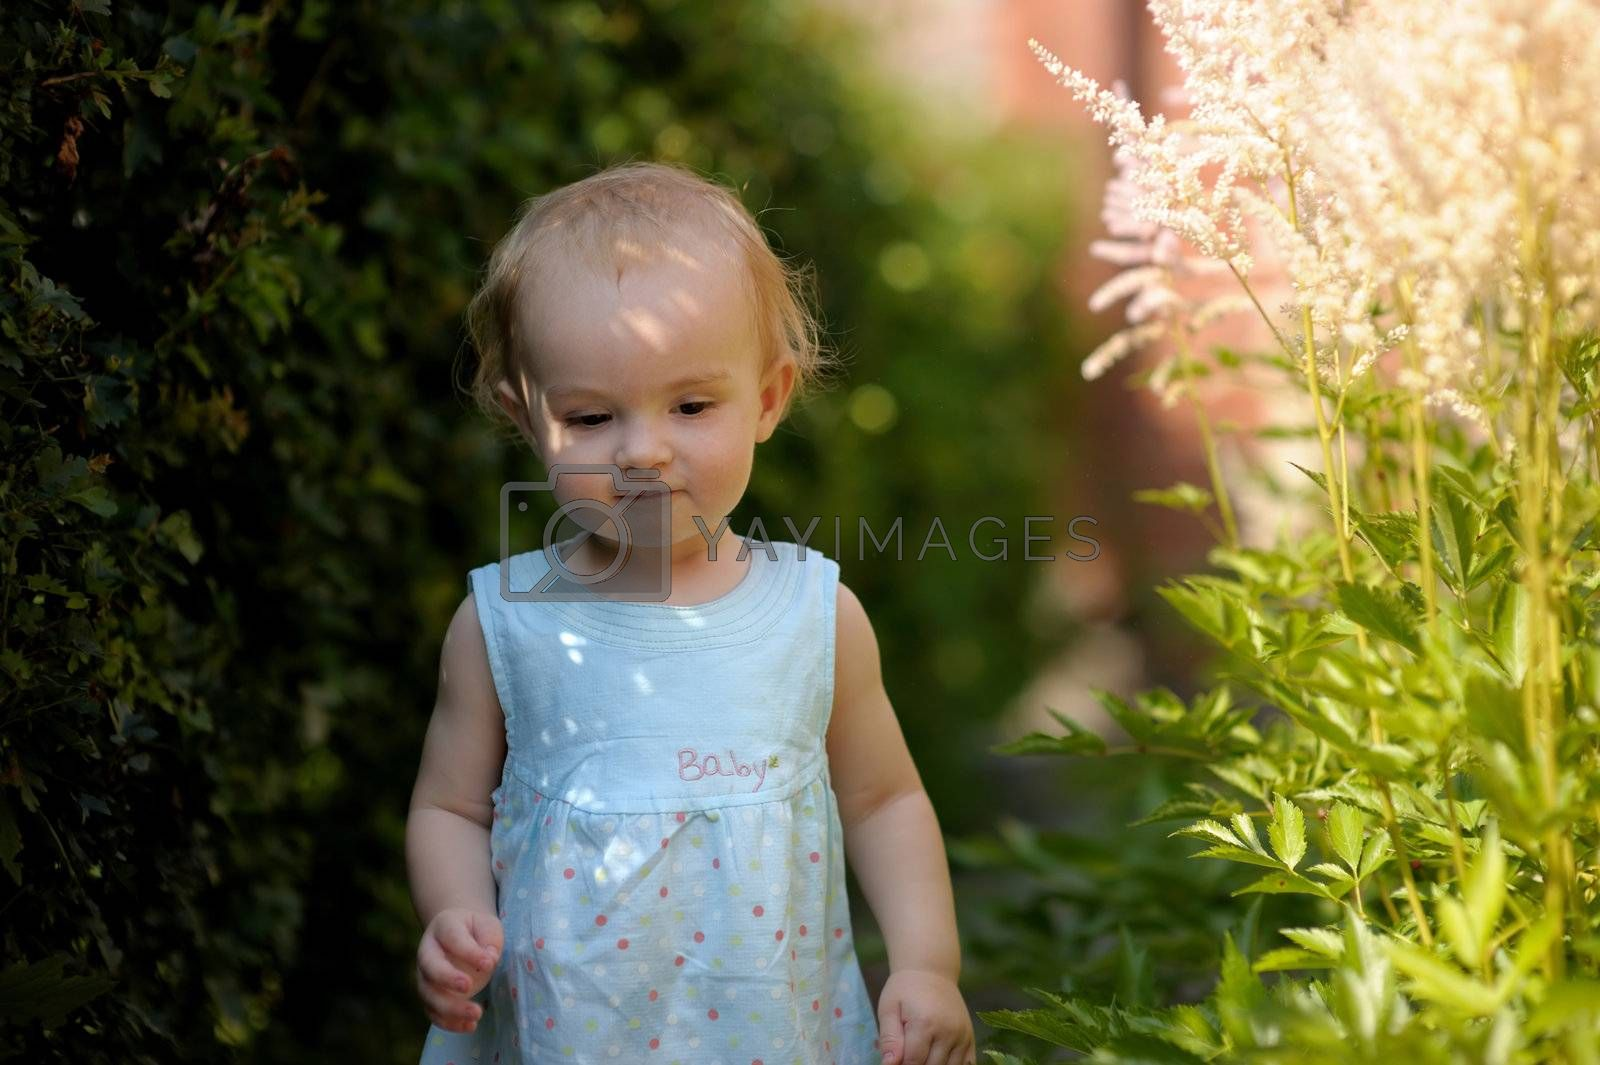 Little baby wearing nice blue dress in an overgrown grass looking thoughtful